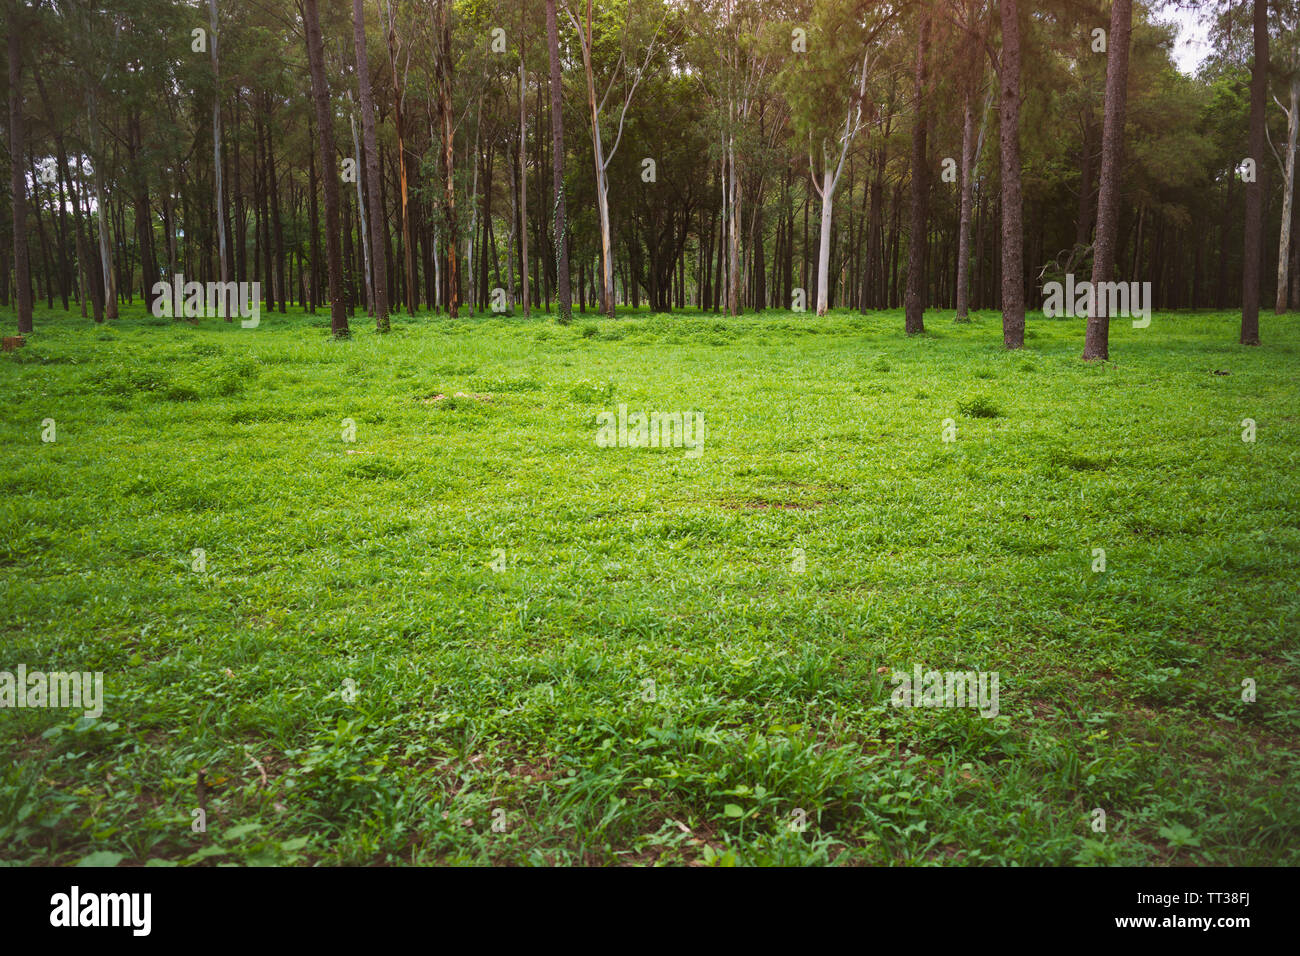 Beautiful woods forest with green nature. - Stock Image